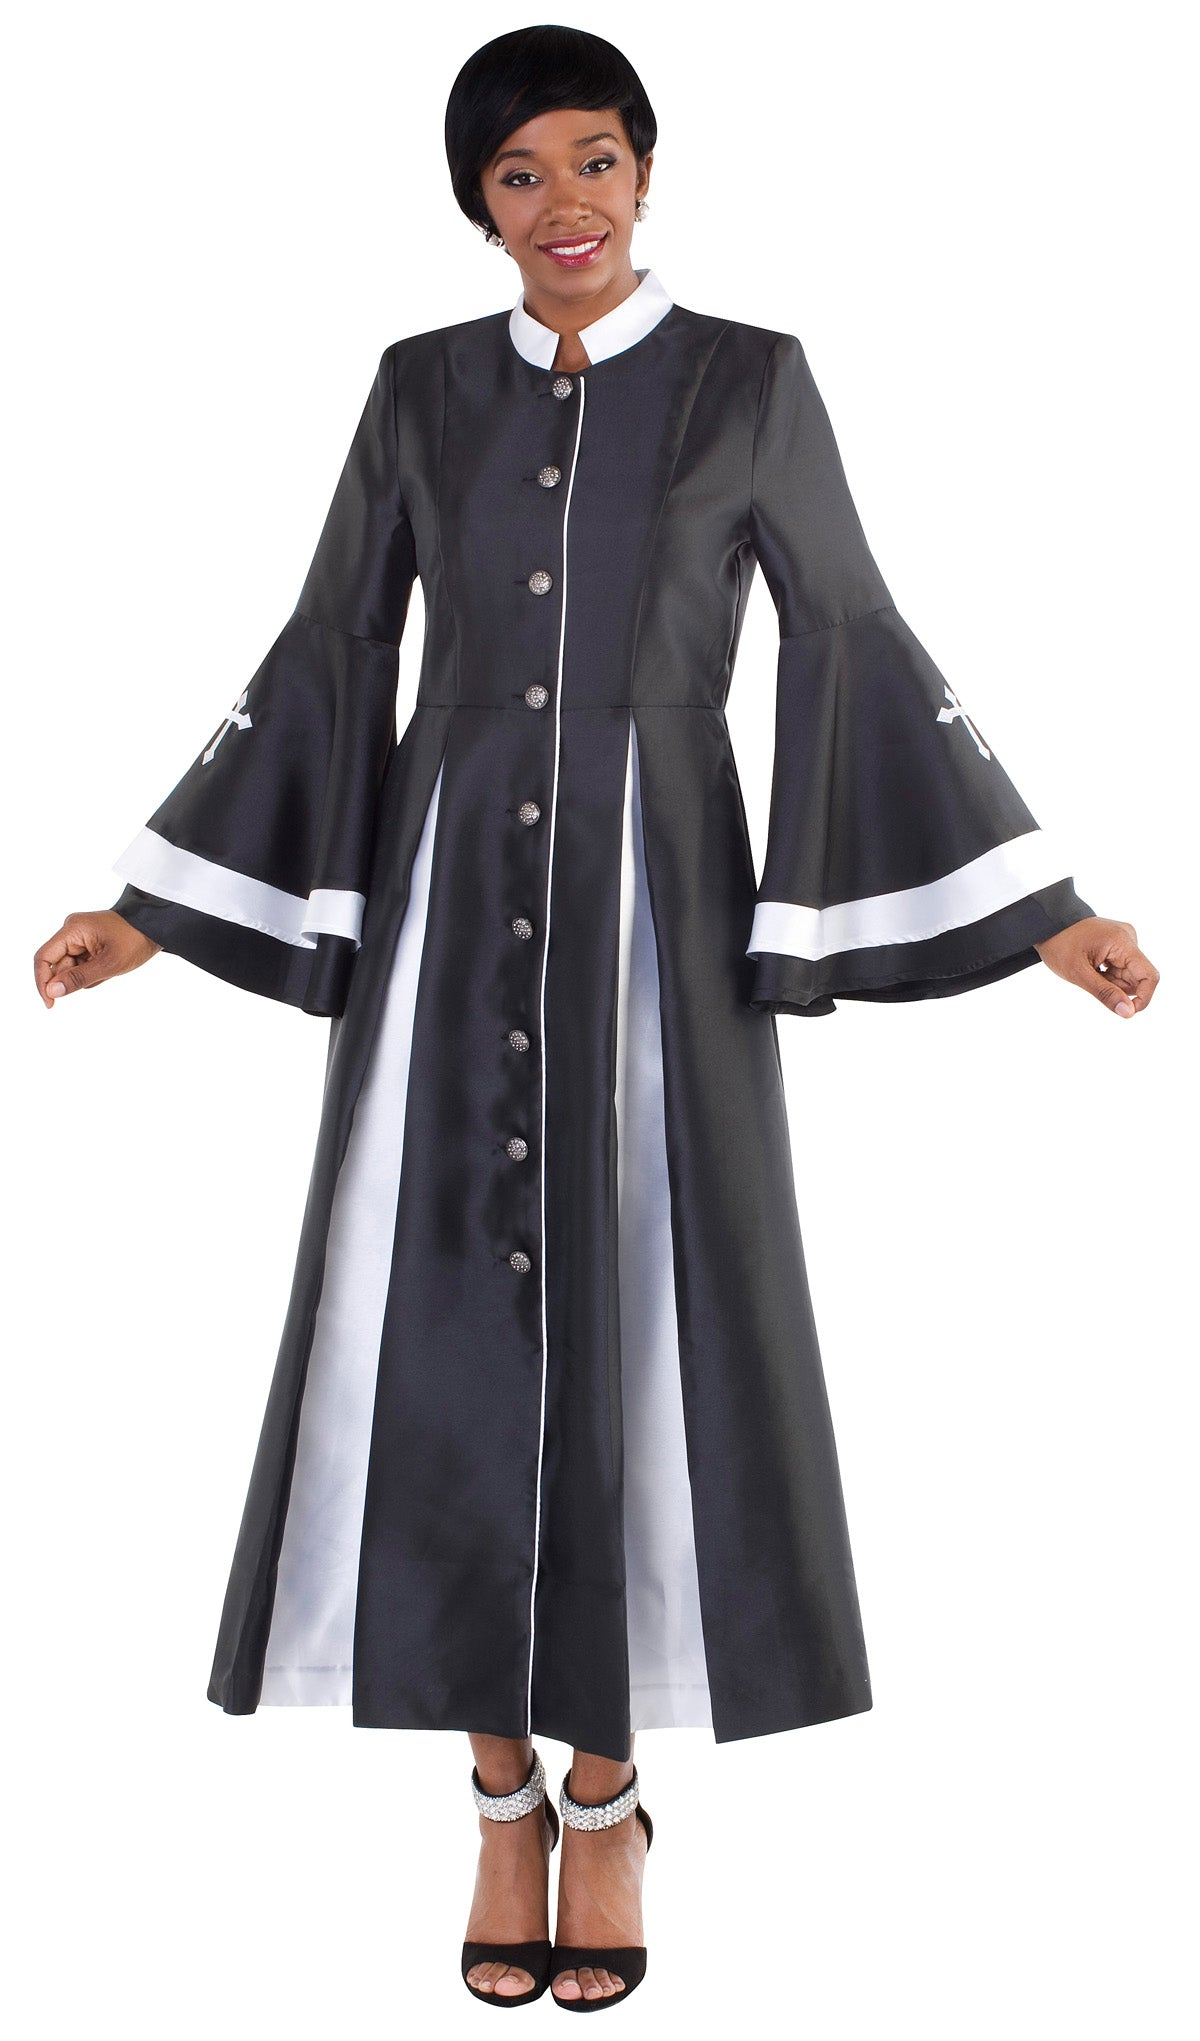 Tally Taylor Robe 4615 Black White Church Suits For Less